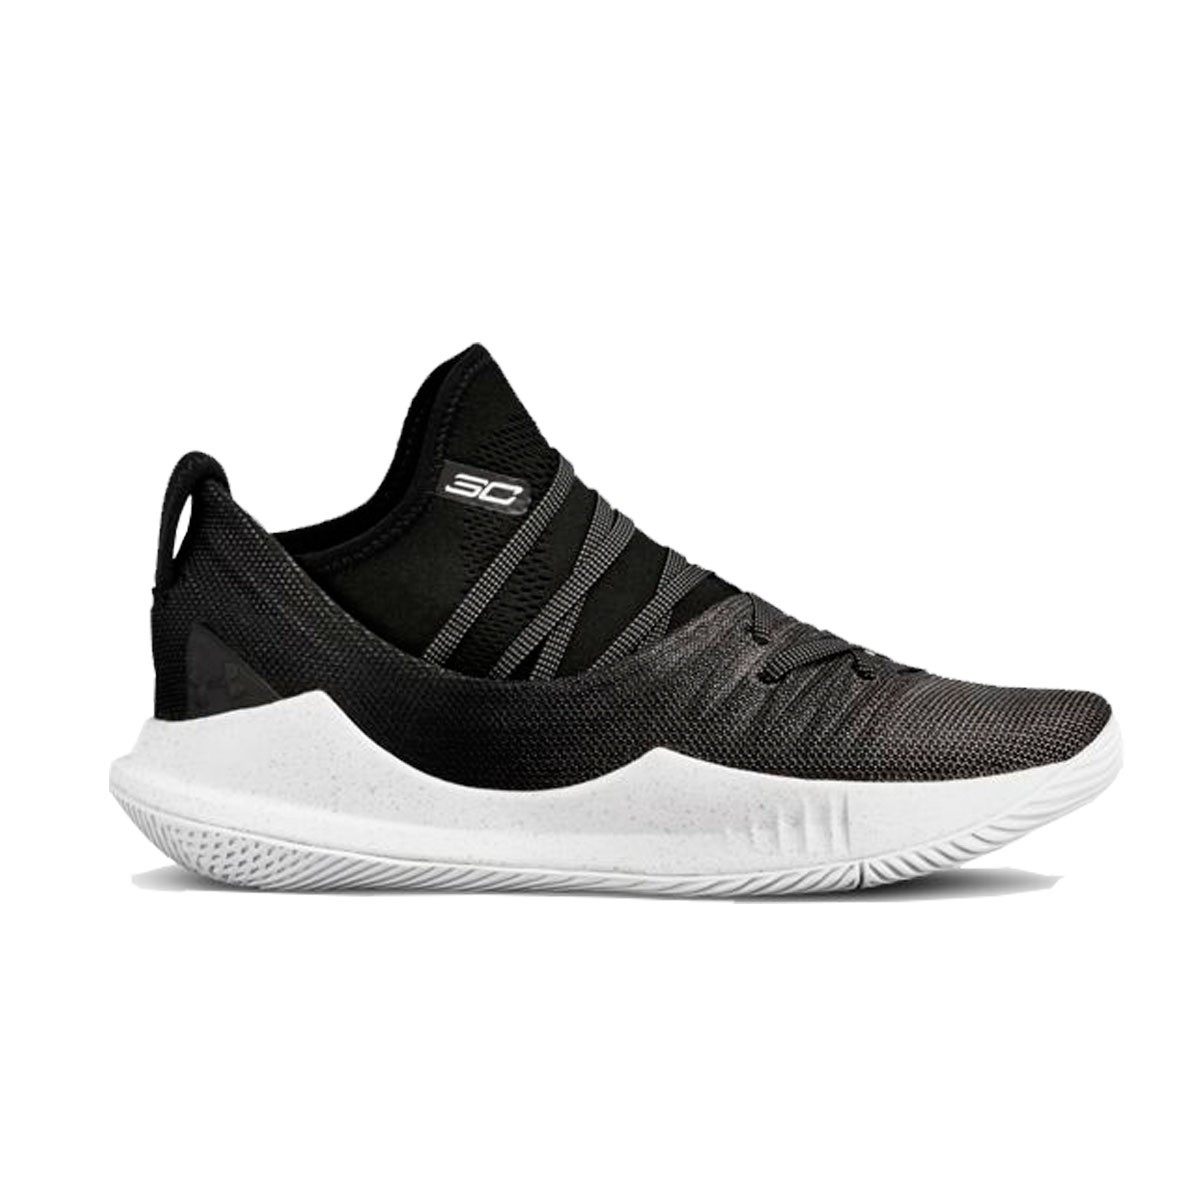 4b01894fb Buy Under Armour Curry 5 'Suit & Tie' Basketball shoes & sneakers